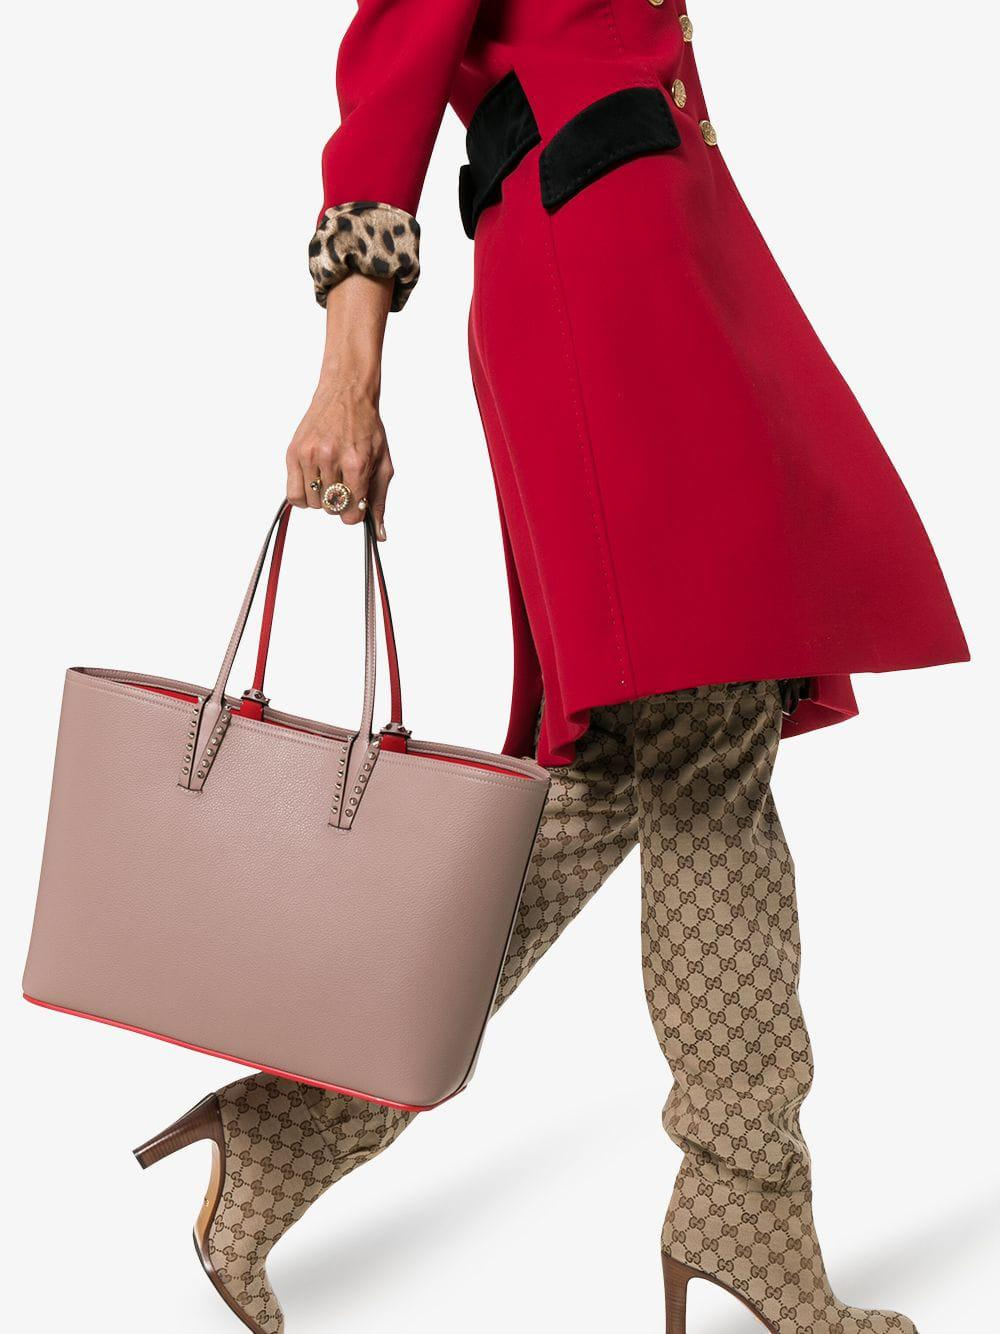 Christian Louboutin Leather Cabata Spike Embellished Tote Bag in Light Pink (Pink)